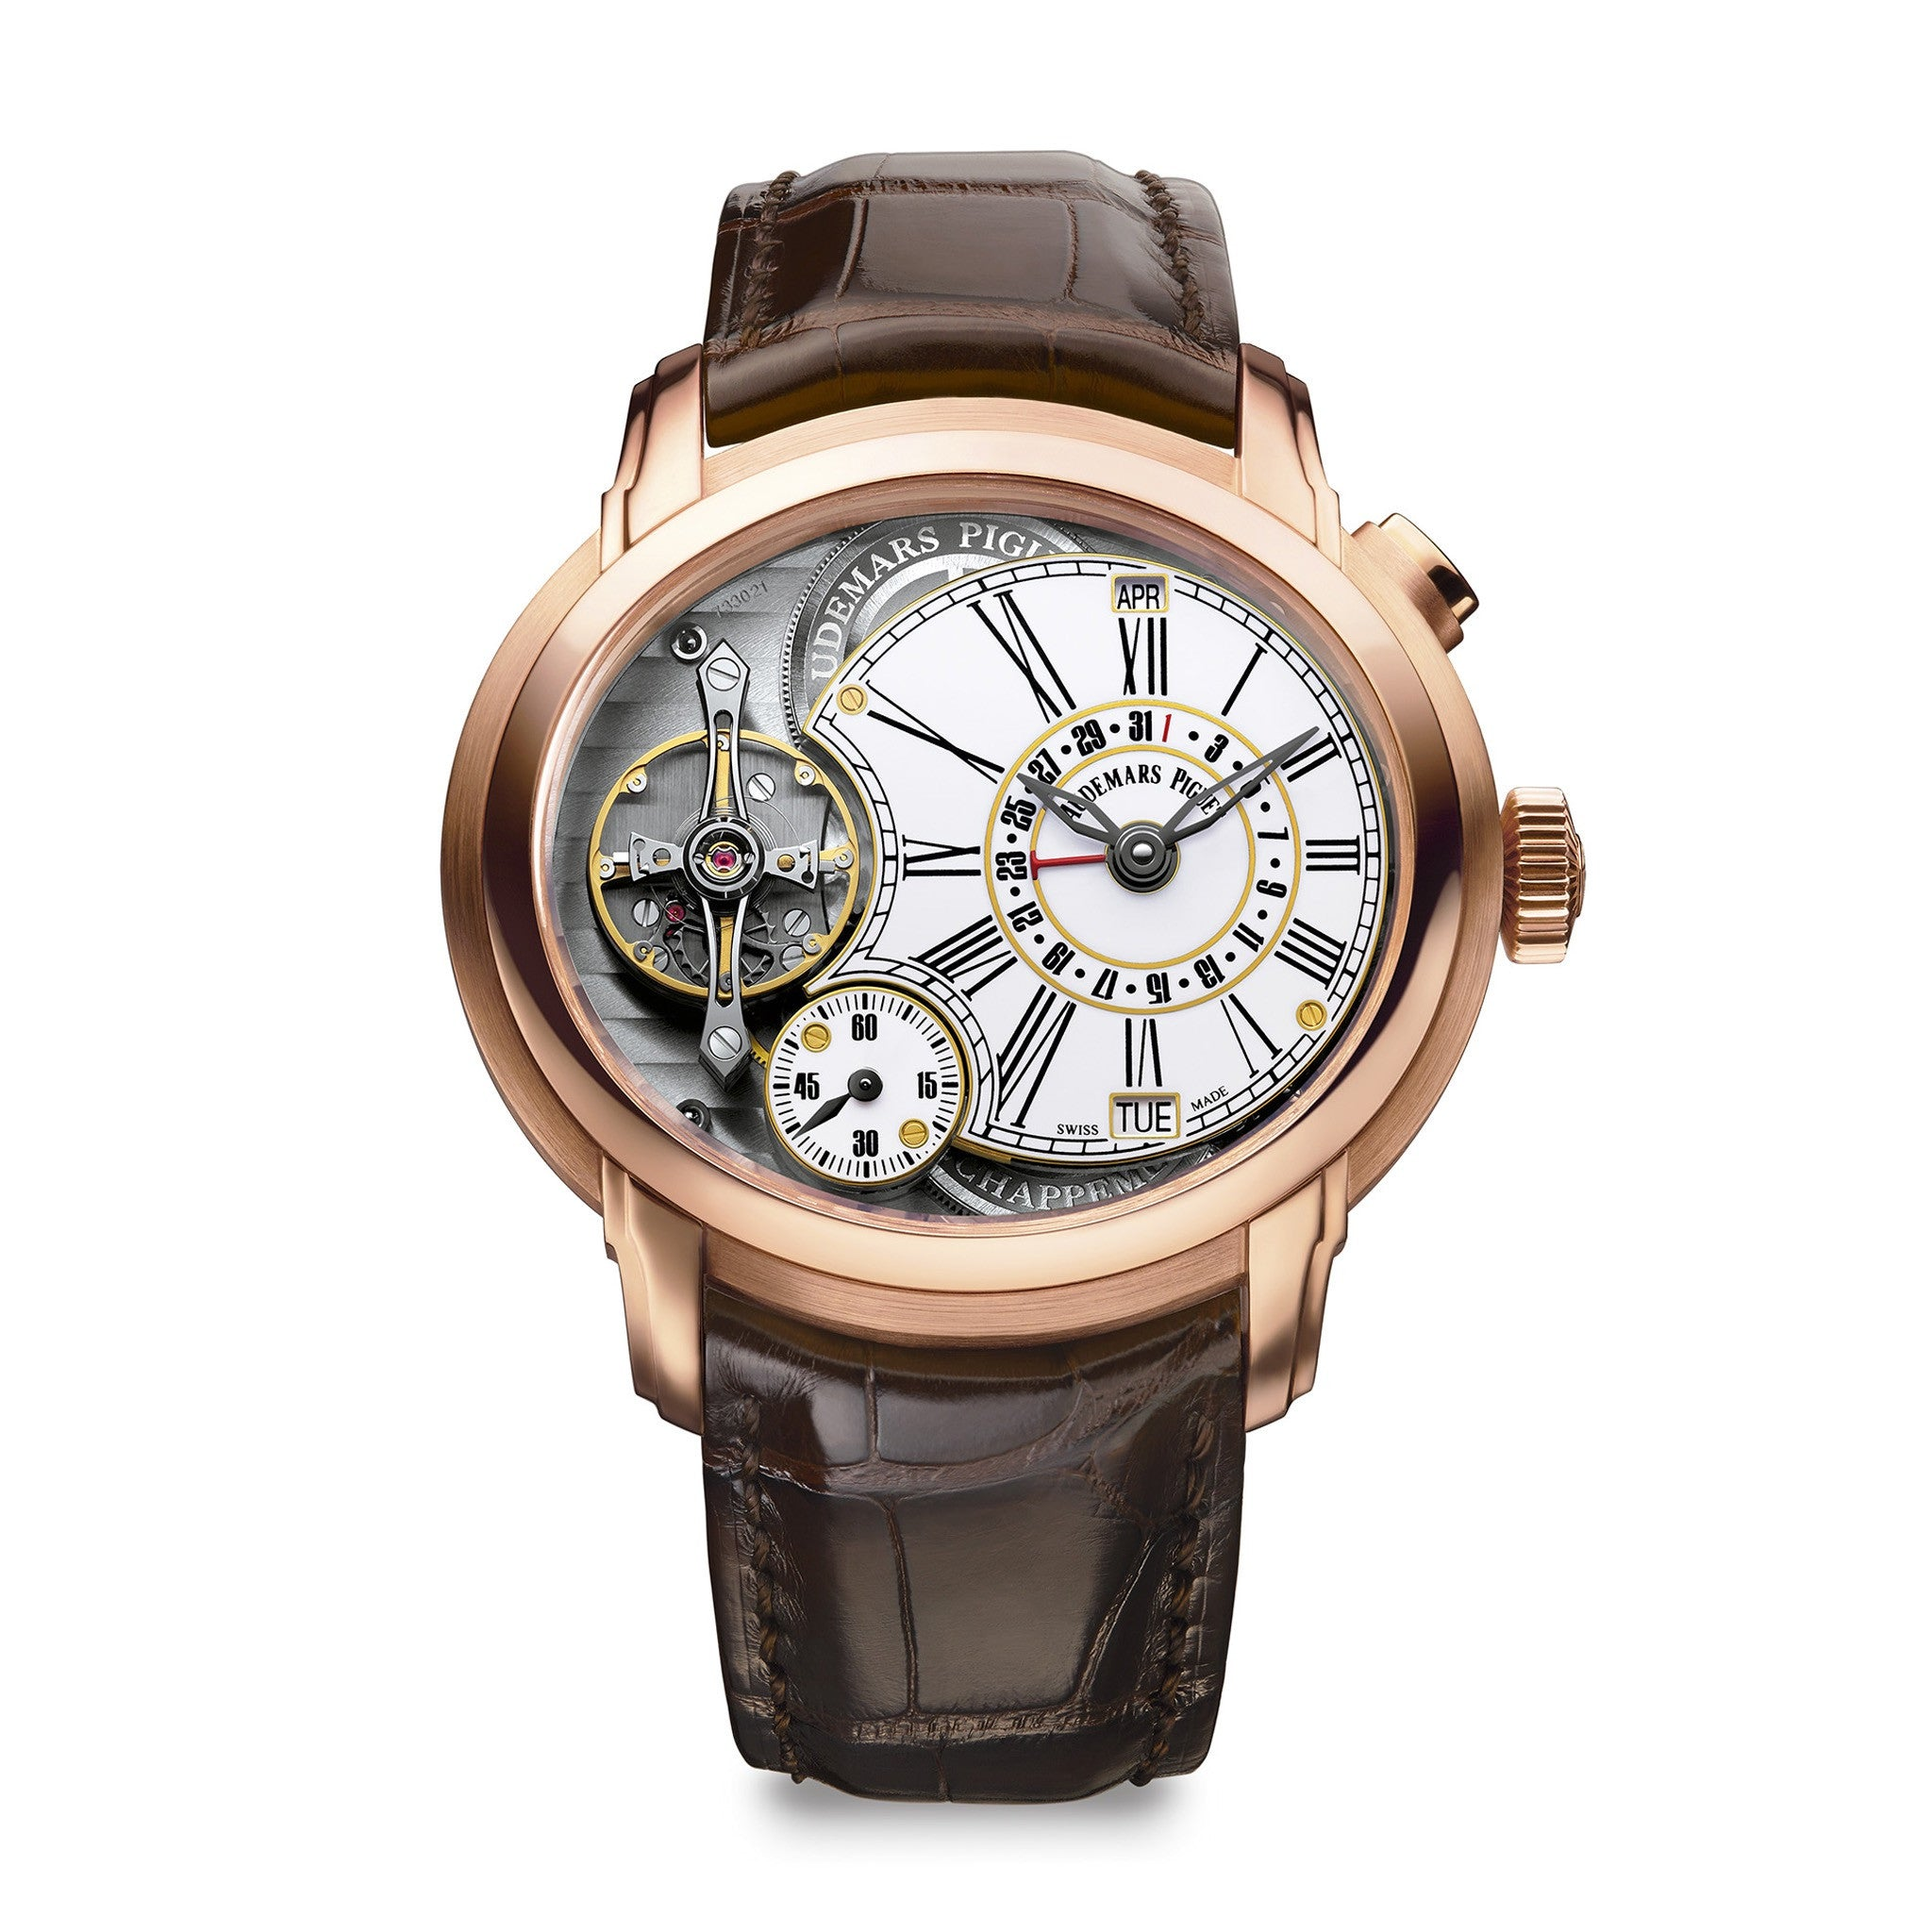 Millenary Quadriennium 26149OR.OO.D803CR.01 - Audemars Piguet